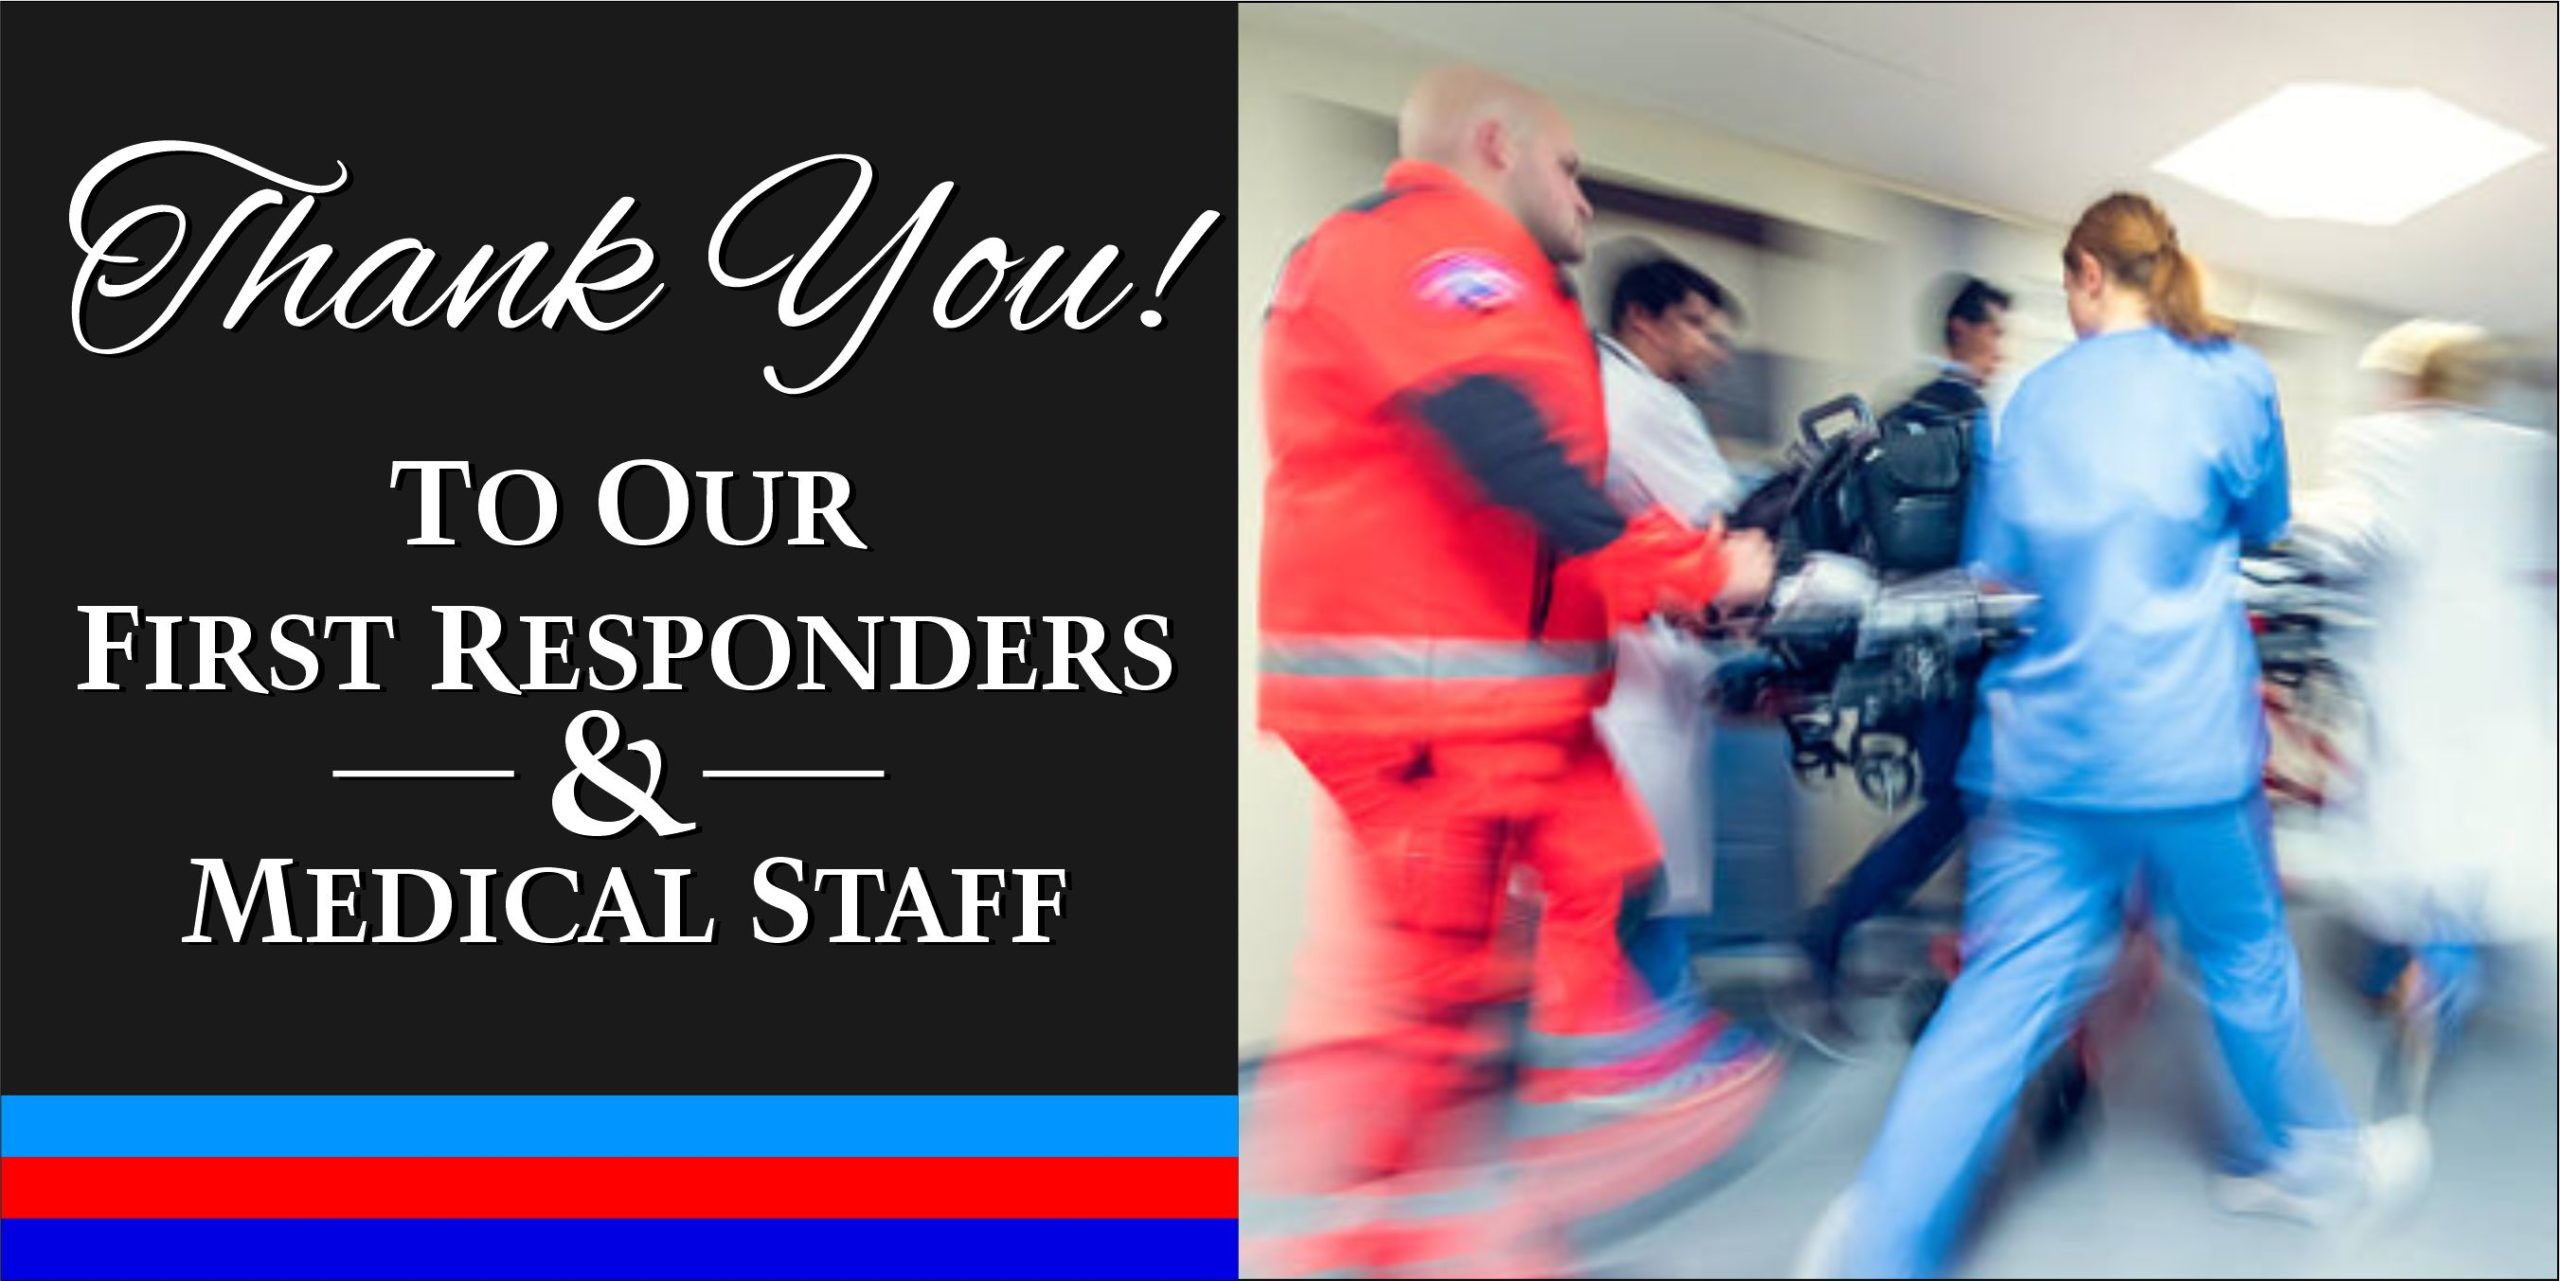 Thanks you to our first responders and medical staff